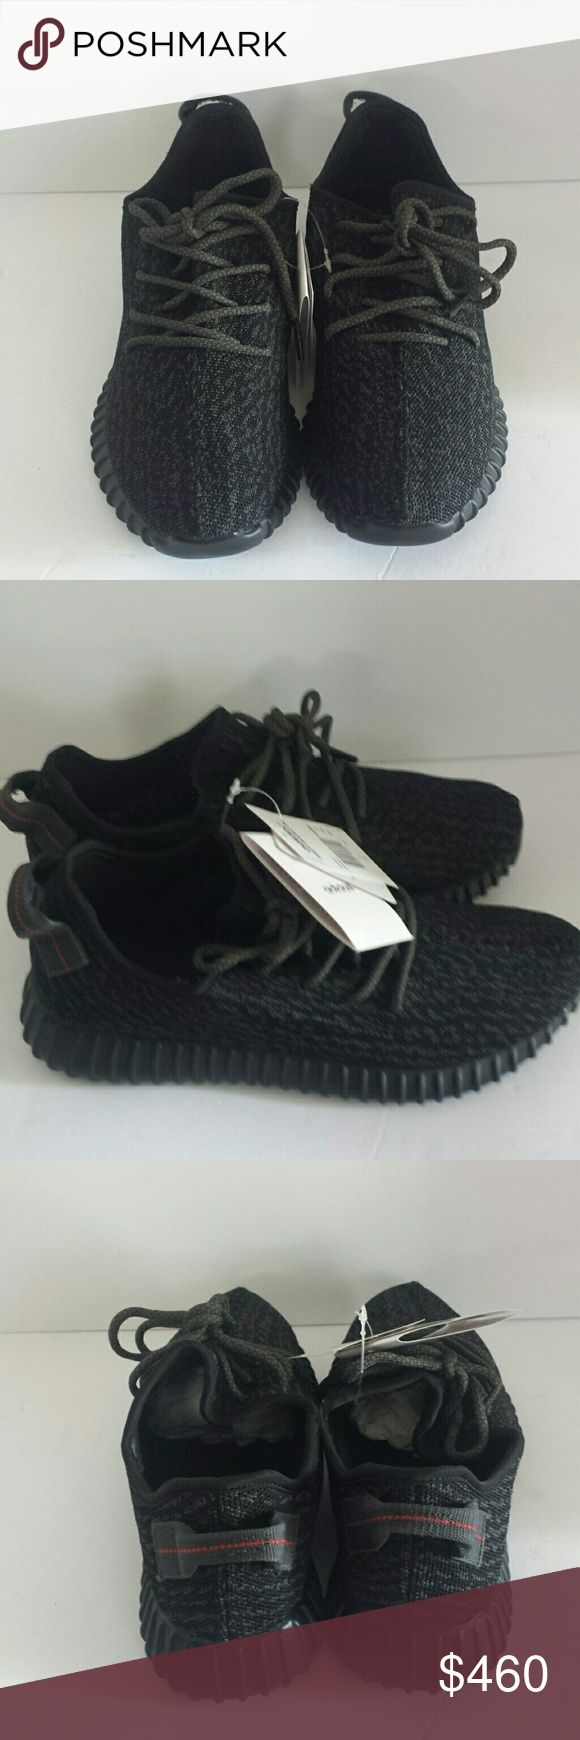 Adidas Yeezy Boost 350 Kanye West Pirate Black Never worn, wrong size,  running shoes. Gifted to my son but he needs size 10. Adidas Shoes Athletic Shoes